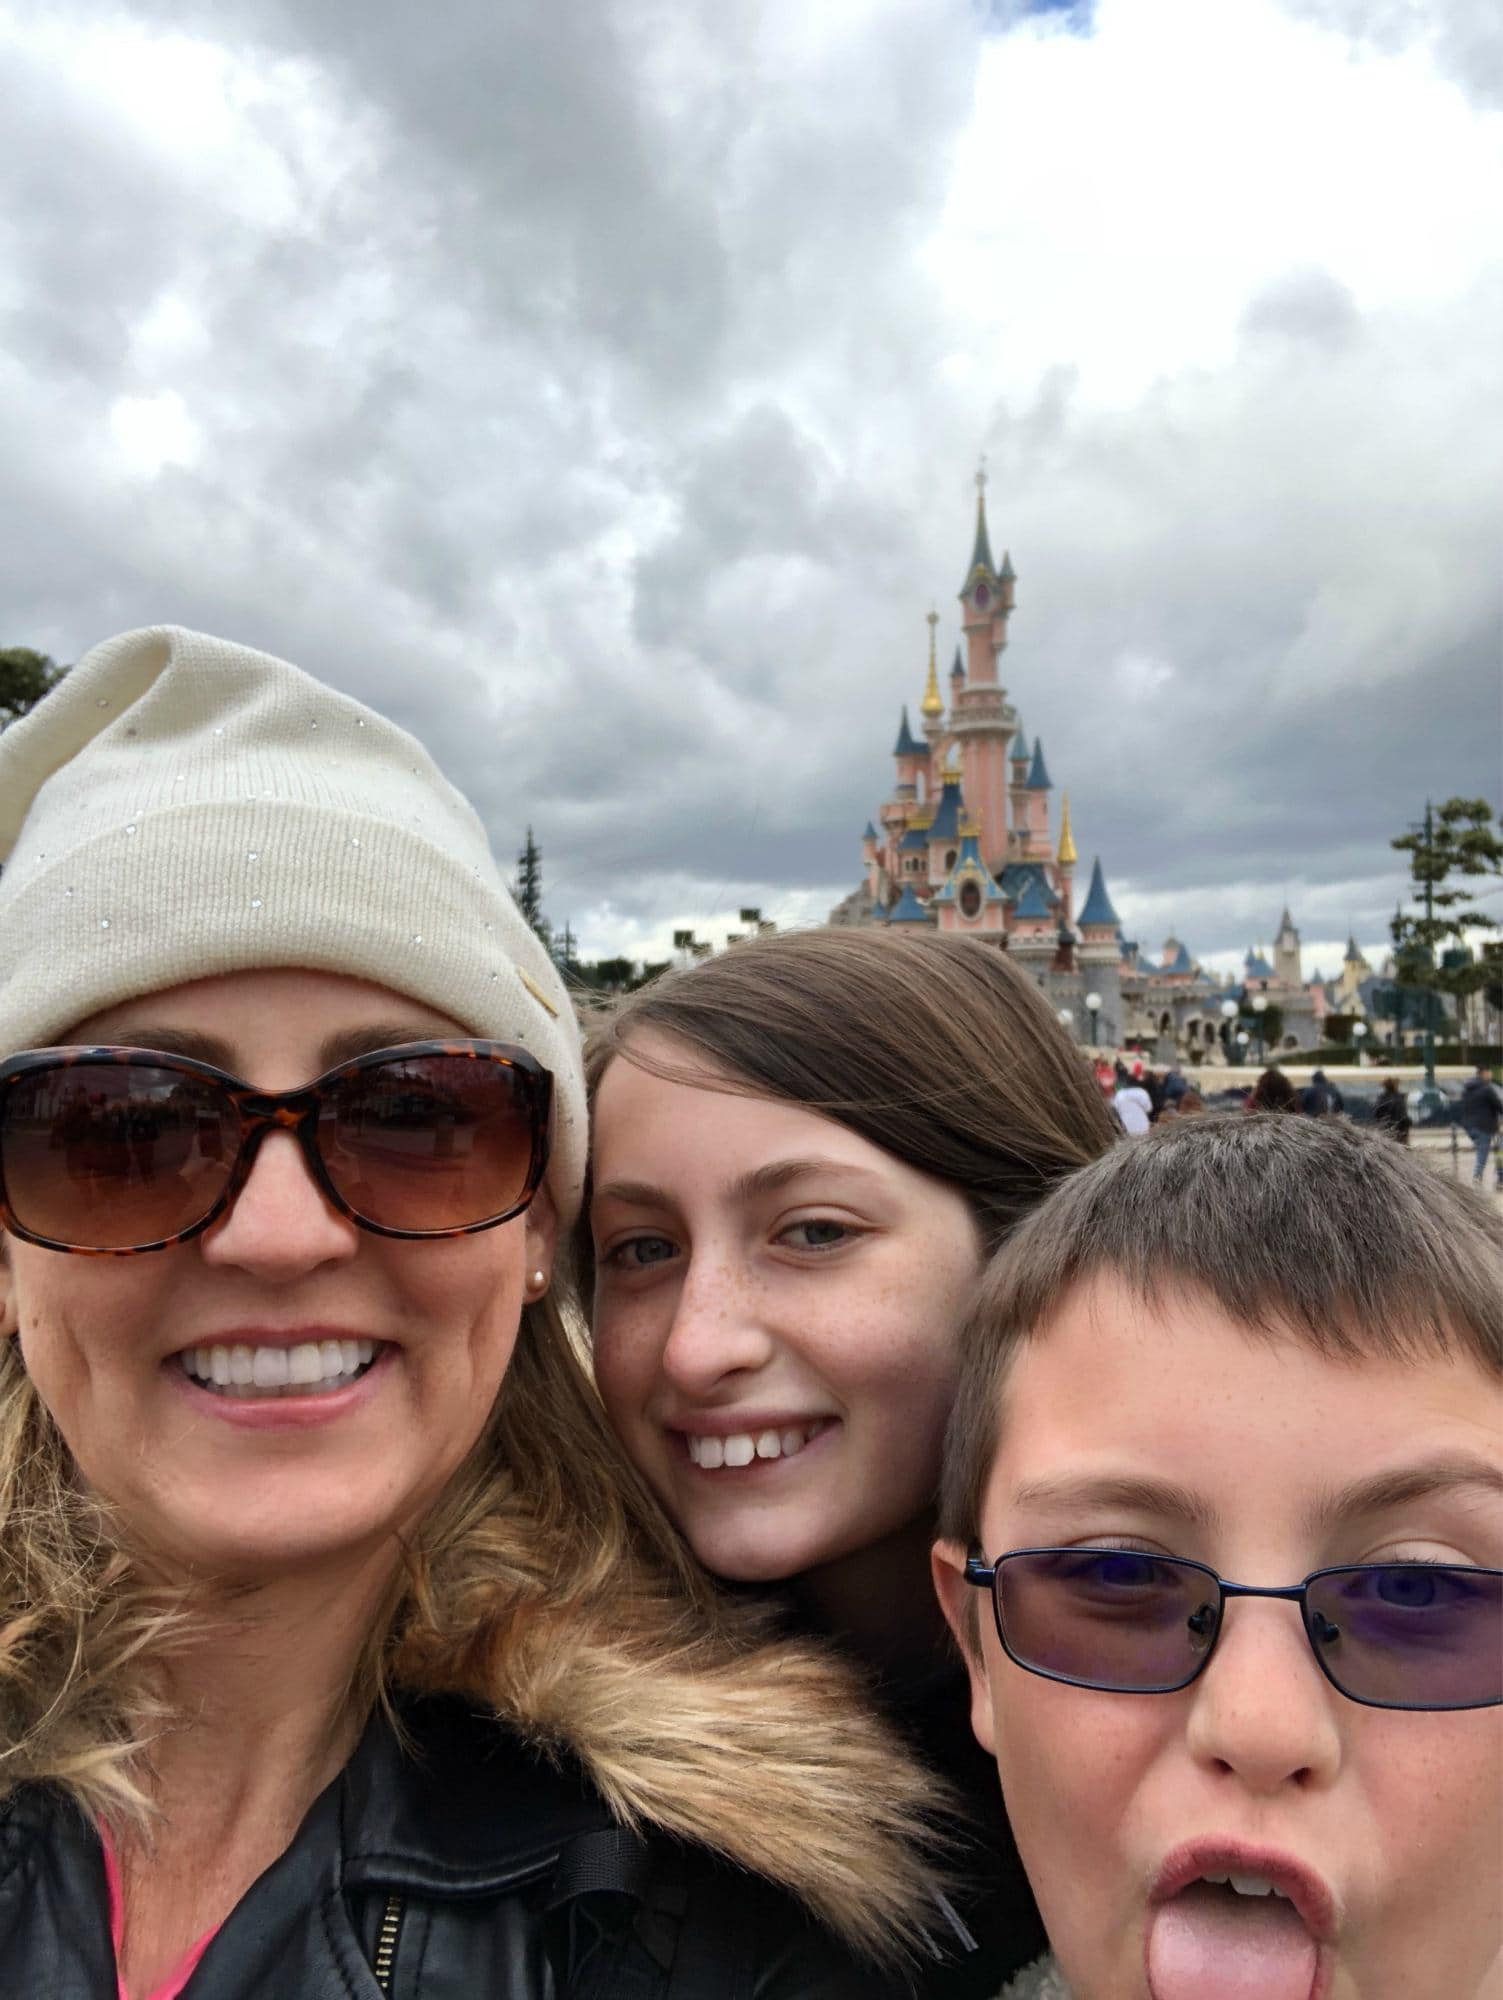 Some of my favorite memories of my family's trip to France took place at Disneyland Paris